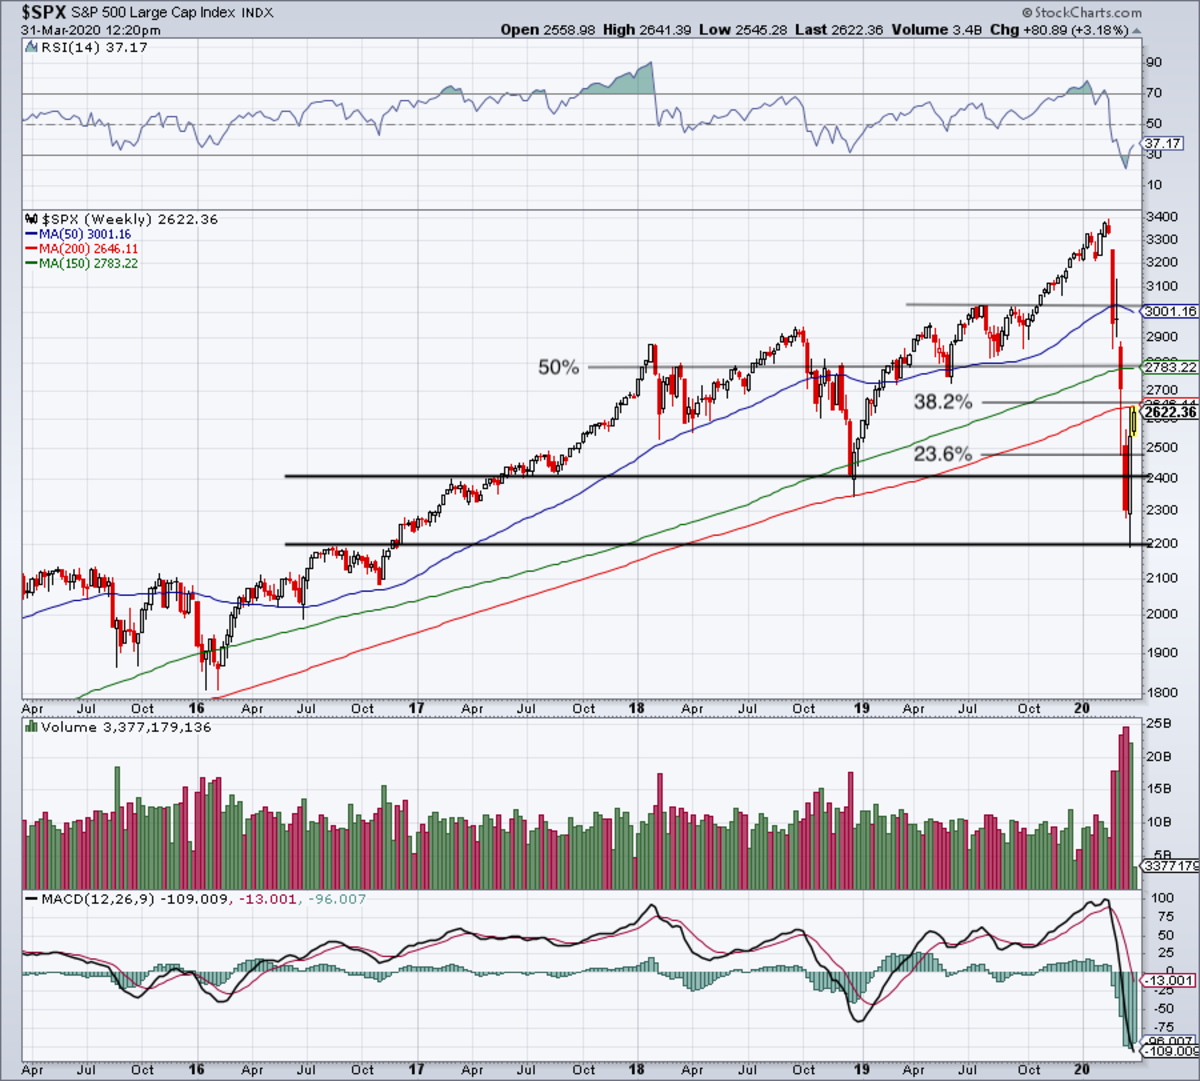 Weekly chart of the S&P 500.